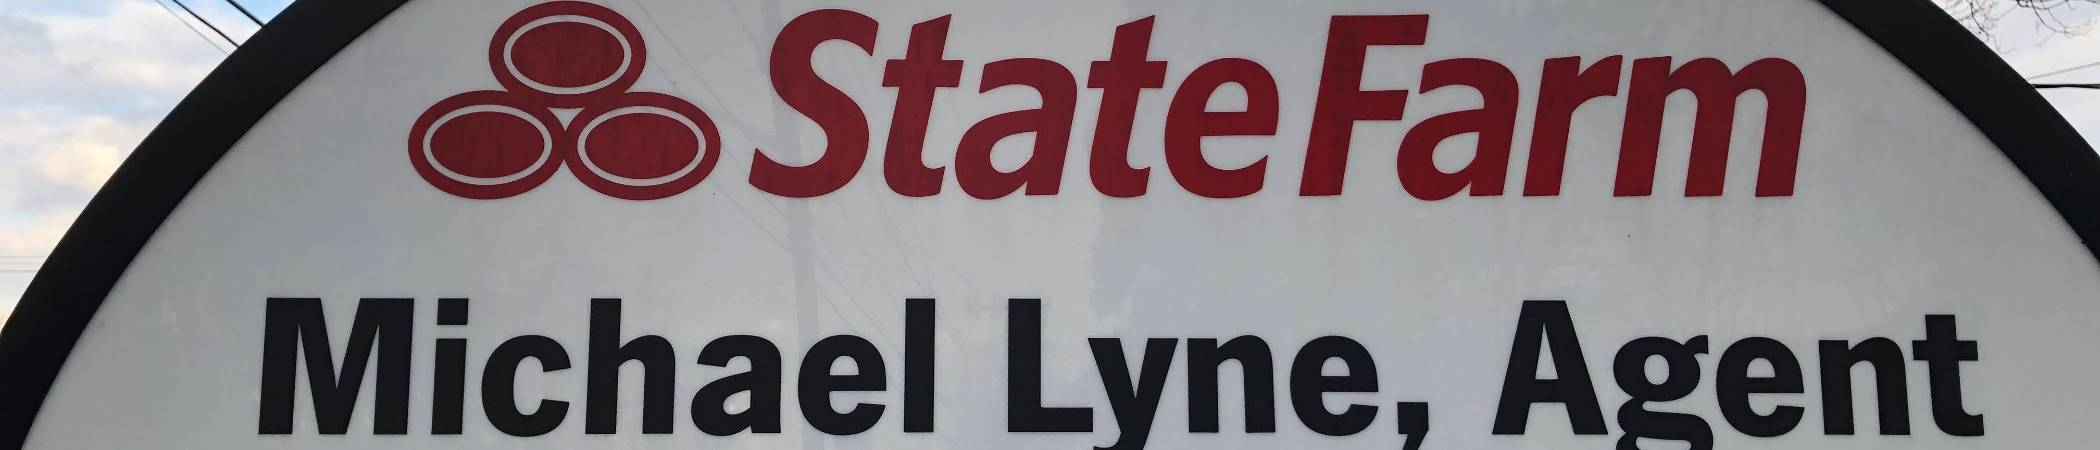 Michael Lyne State Farm Insurance in Clark, NJ | Home, Auto Insurance & more